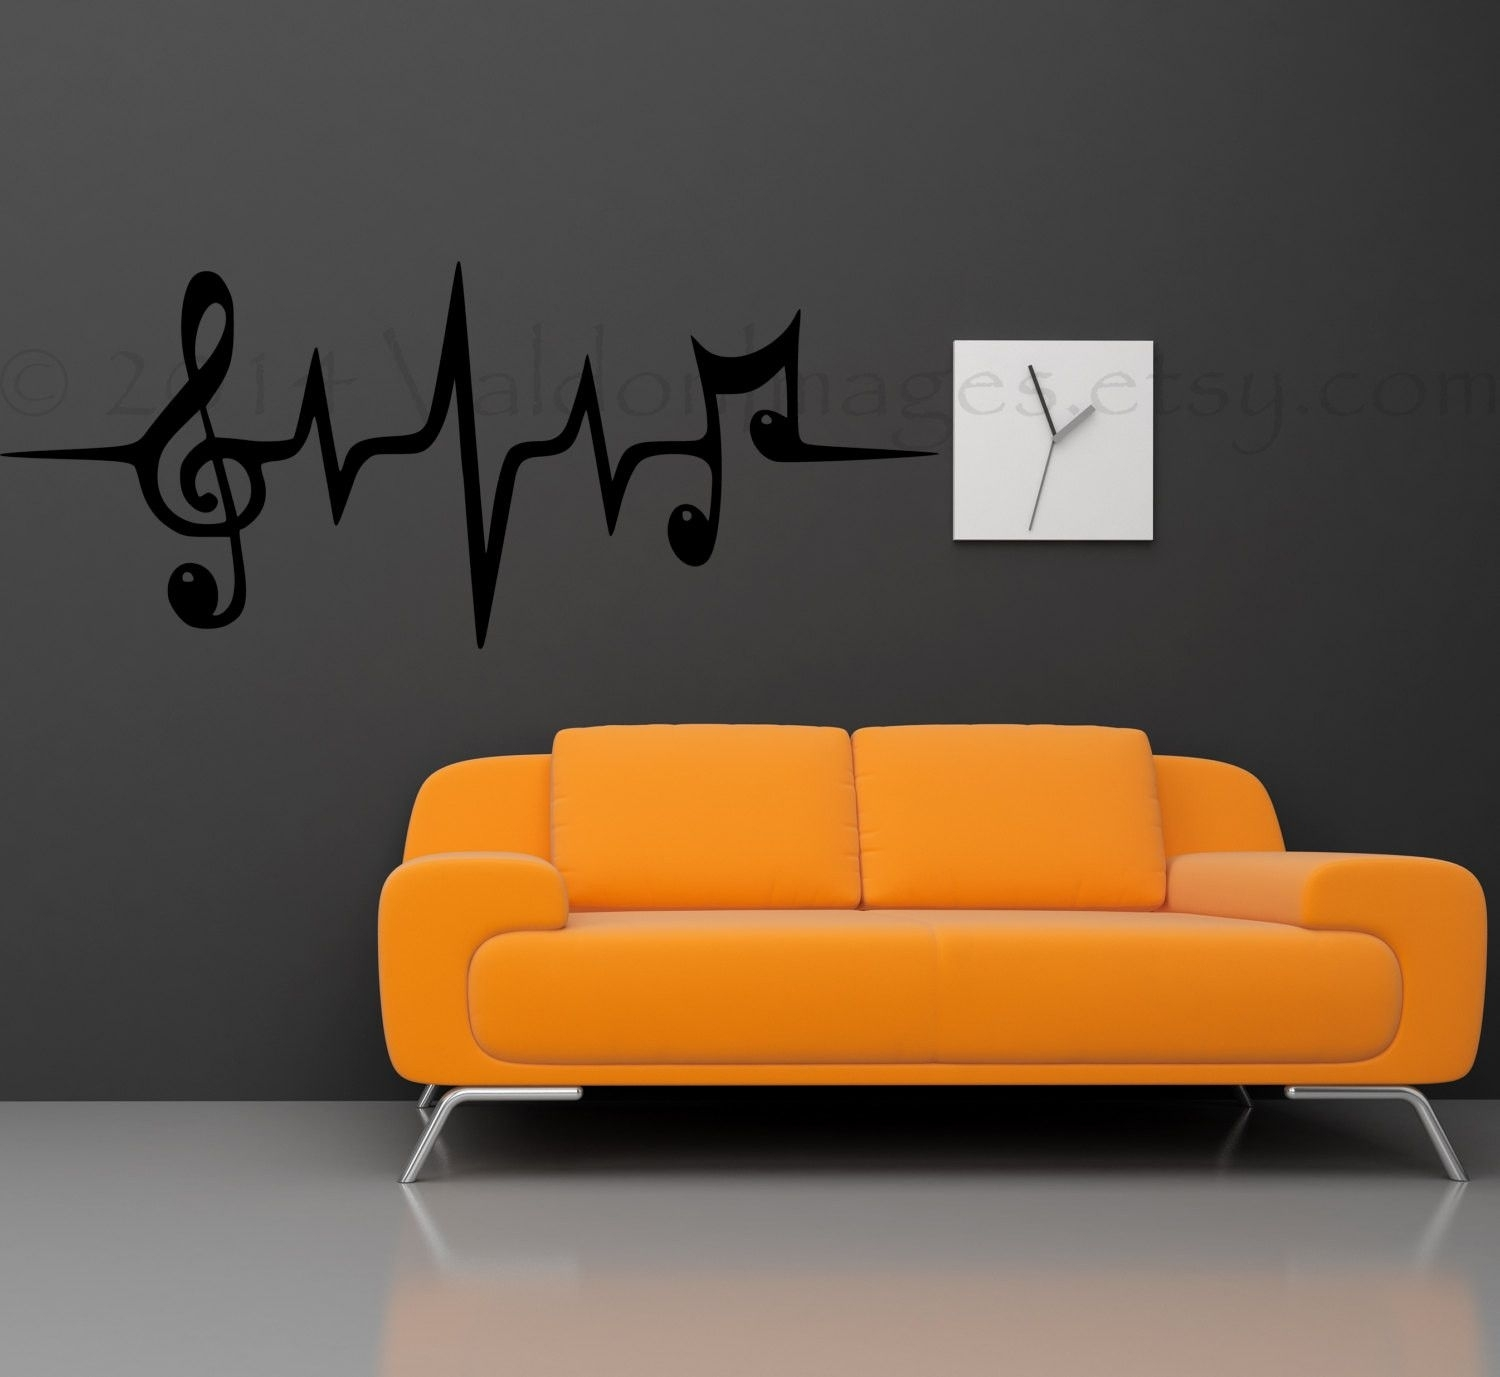 Astonishing Sensational Music Wall Art Treble Clef Frame Paper Zoom With Regard To Most Recently Released Music Wall Art (View 2 of 15)